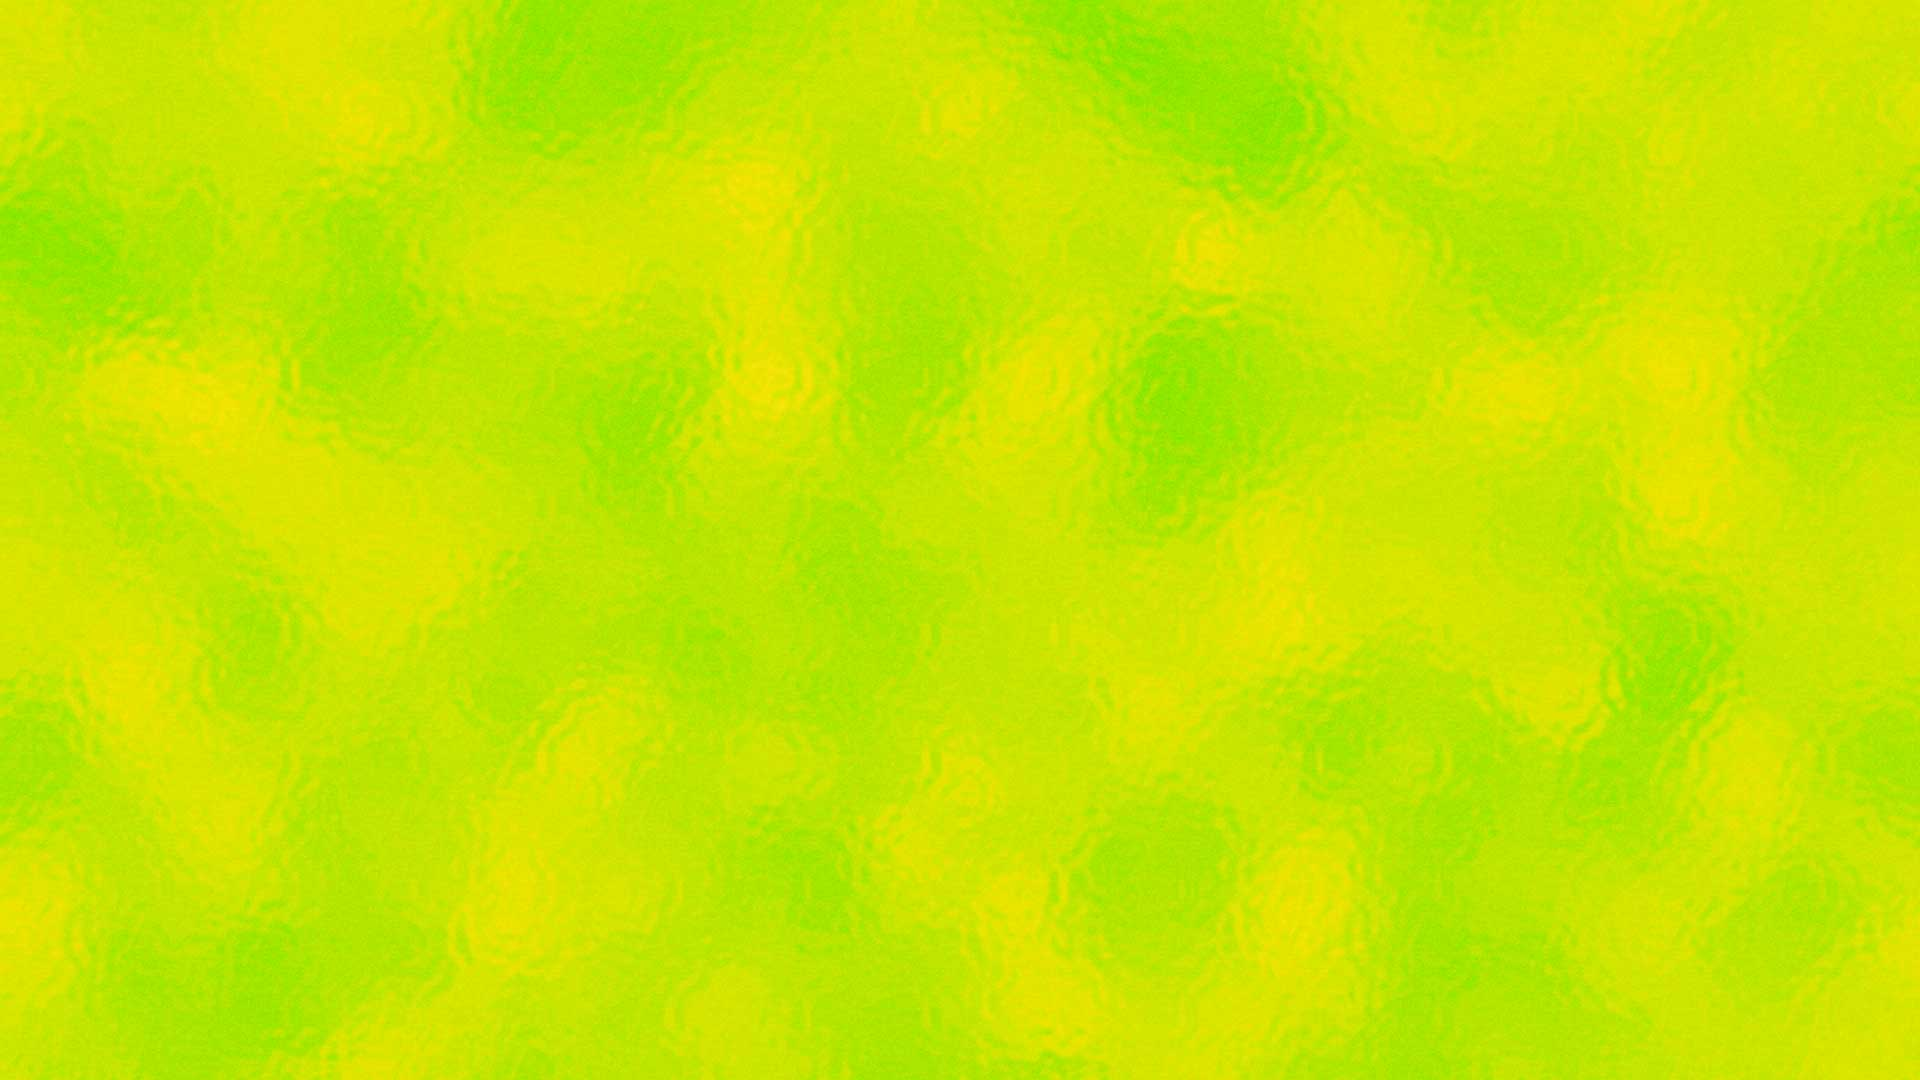 Lime Green And Black Wallpaper Lime Green Backgrounds...